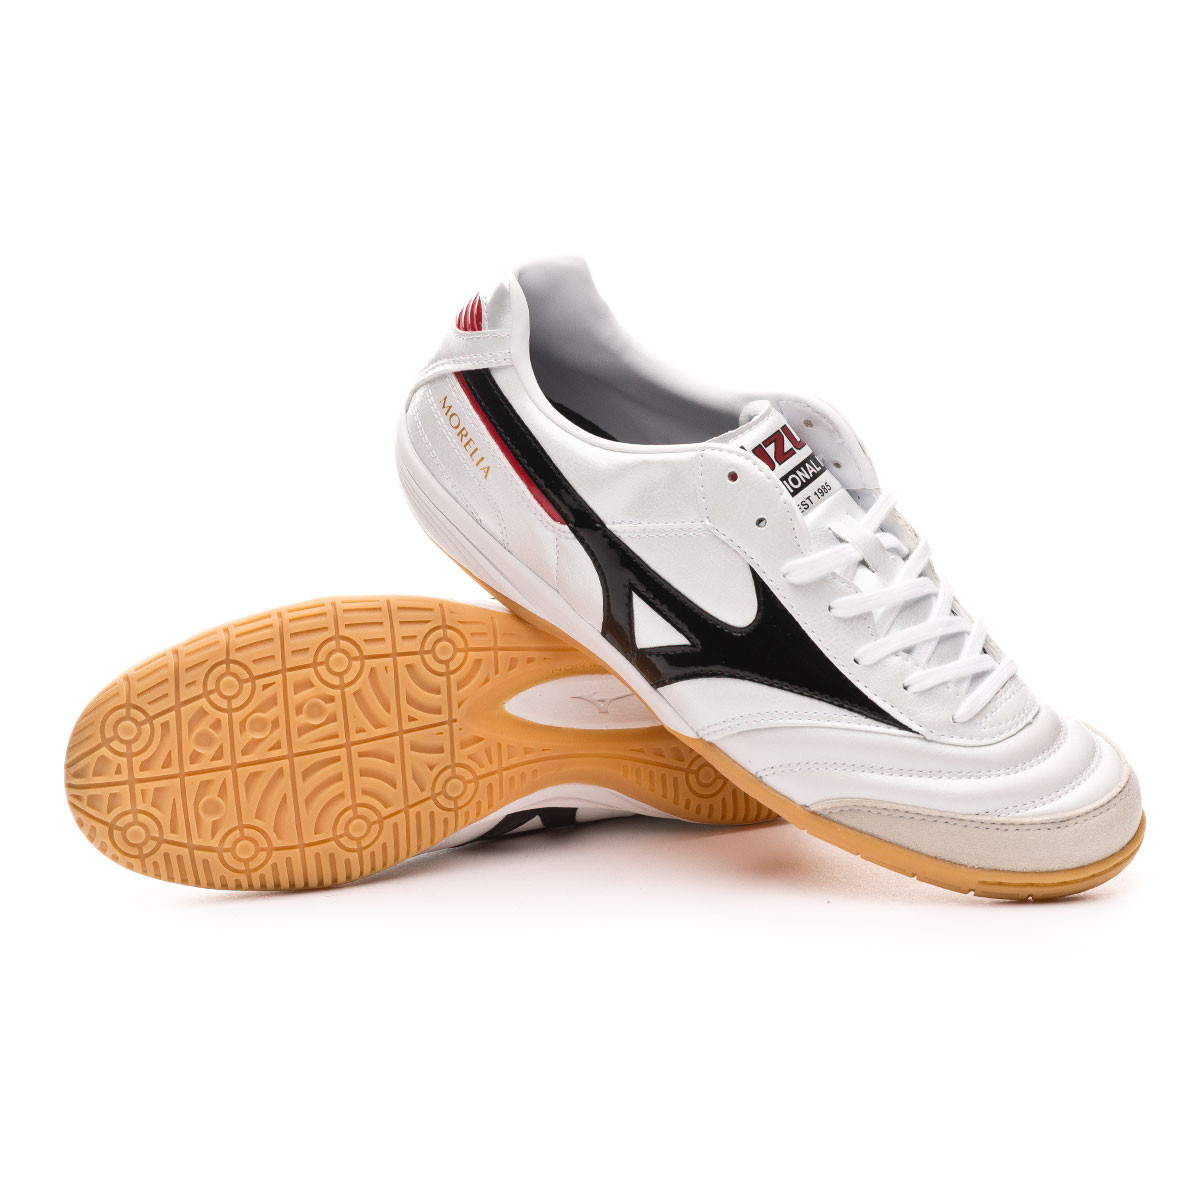 pretty nice 75a01 8fde7 Zapatilla Morelia Indoor White-Black-Chinese red